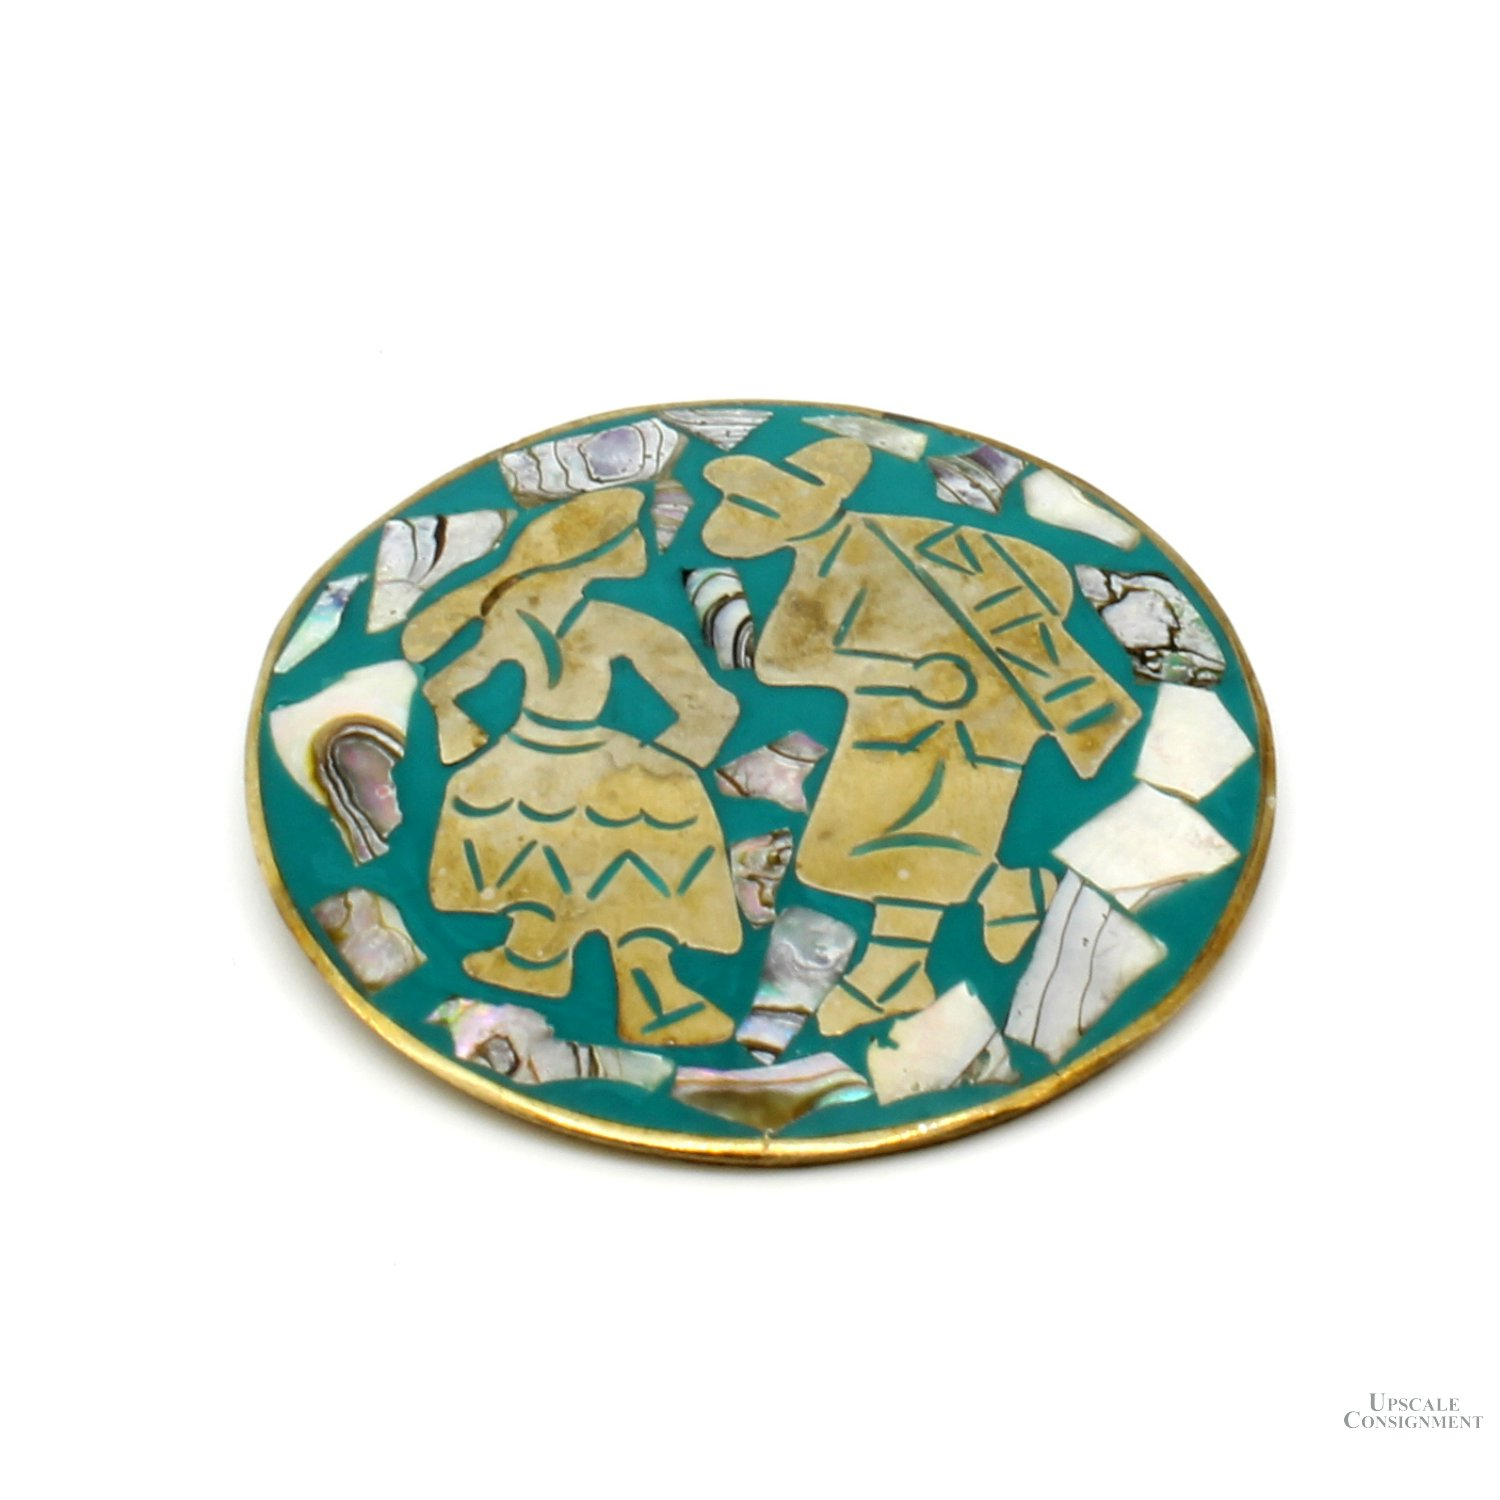 Vintage-Mexico-Turquoise-Shell-Inlay-Mosaic-Pendant-Brooch_80621A.jpg